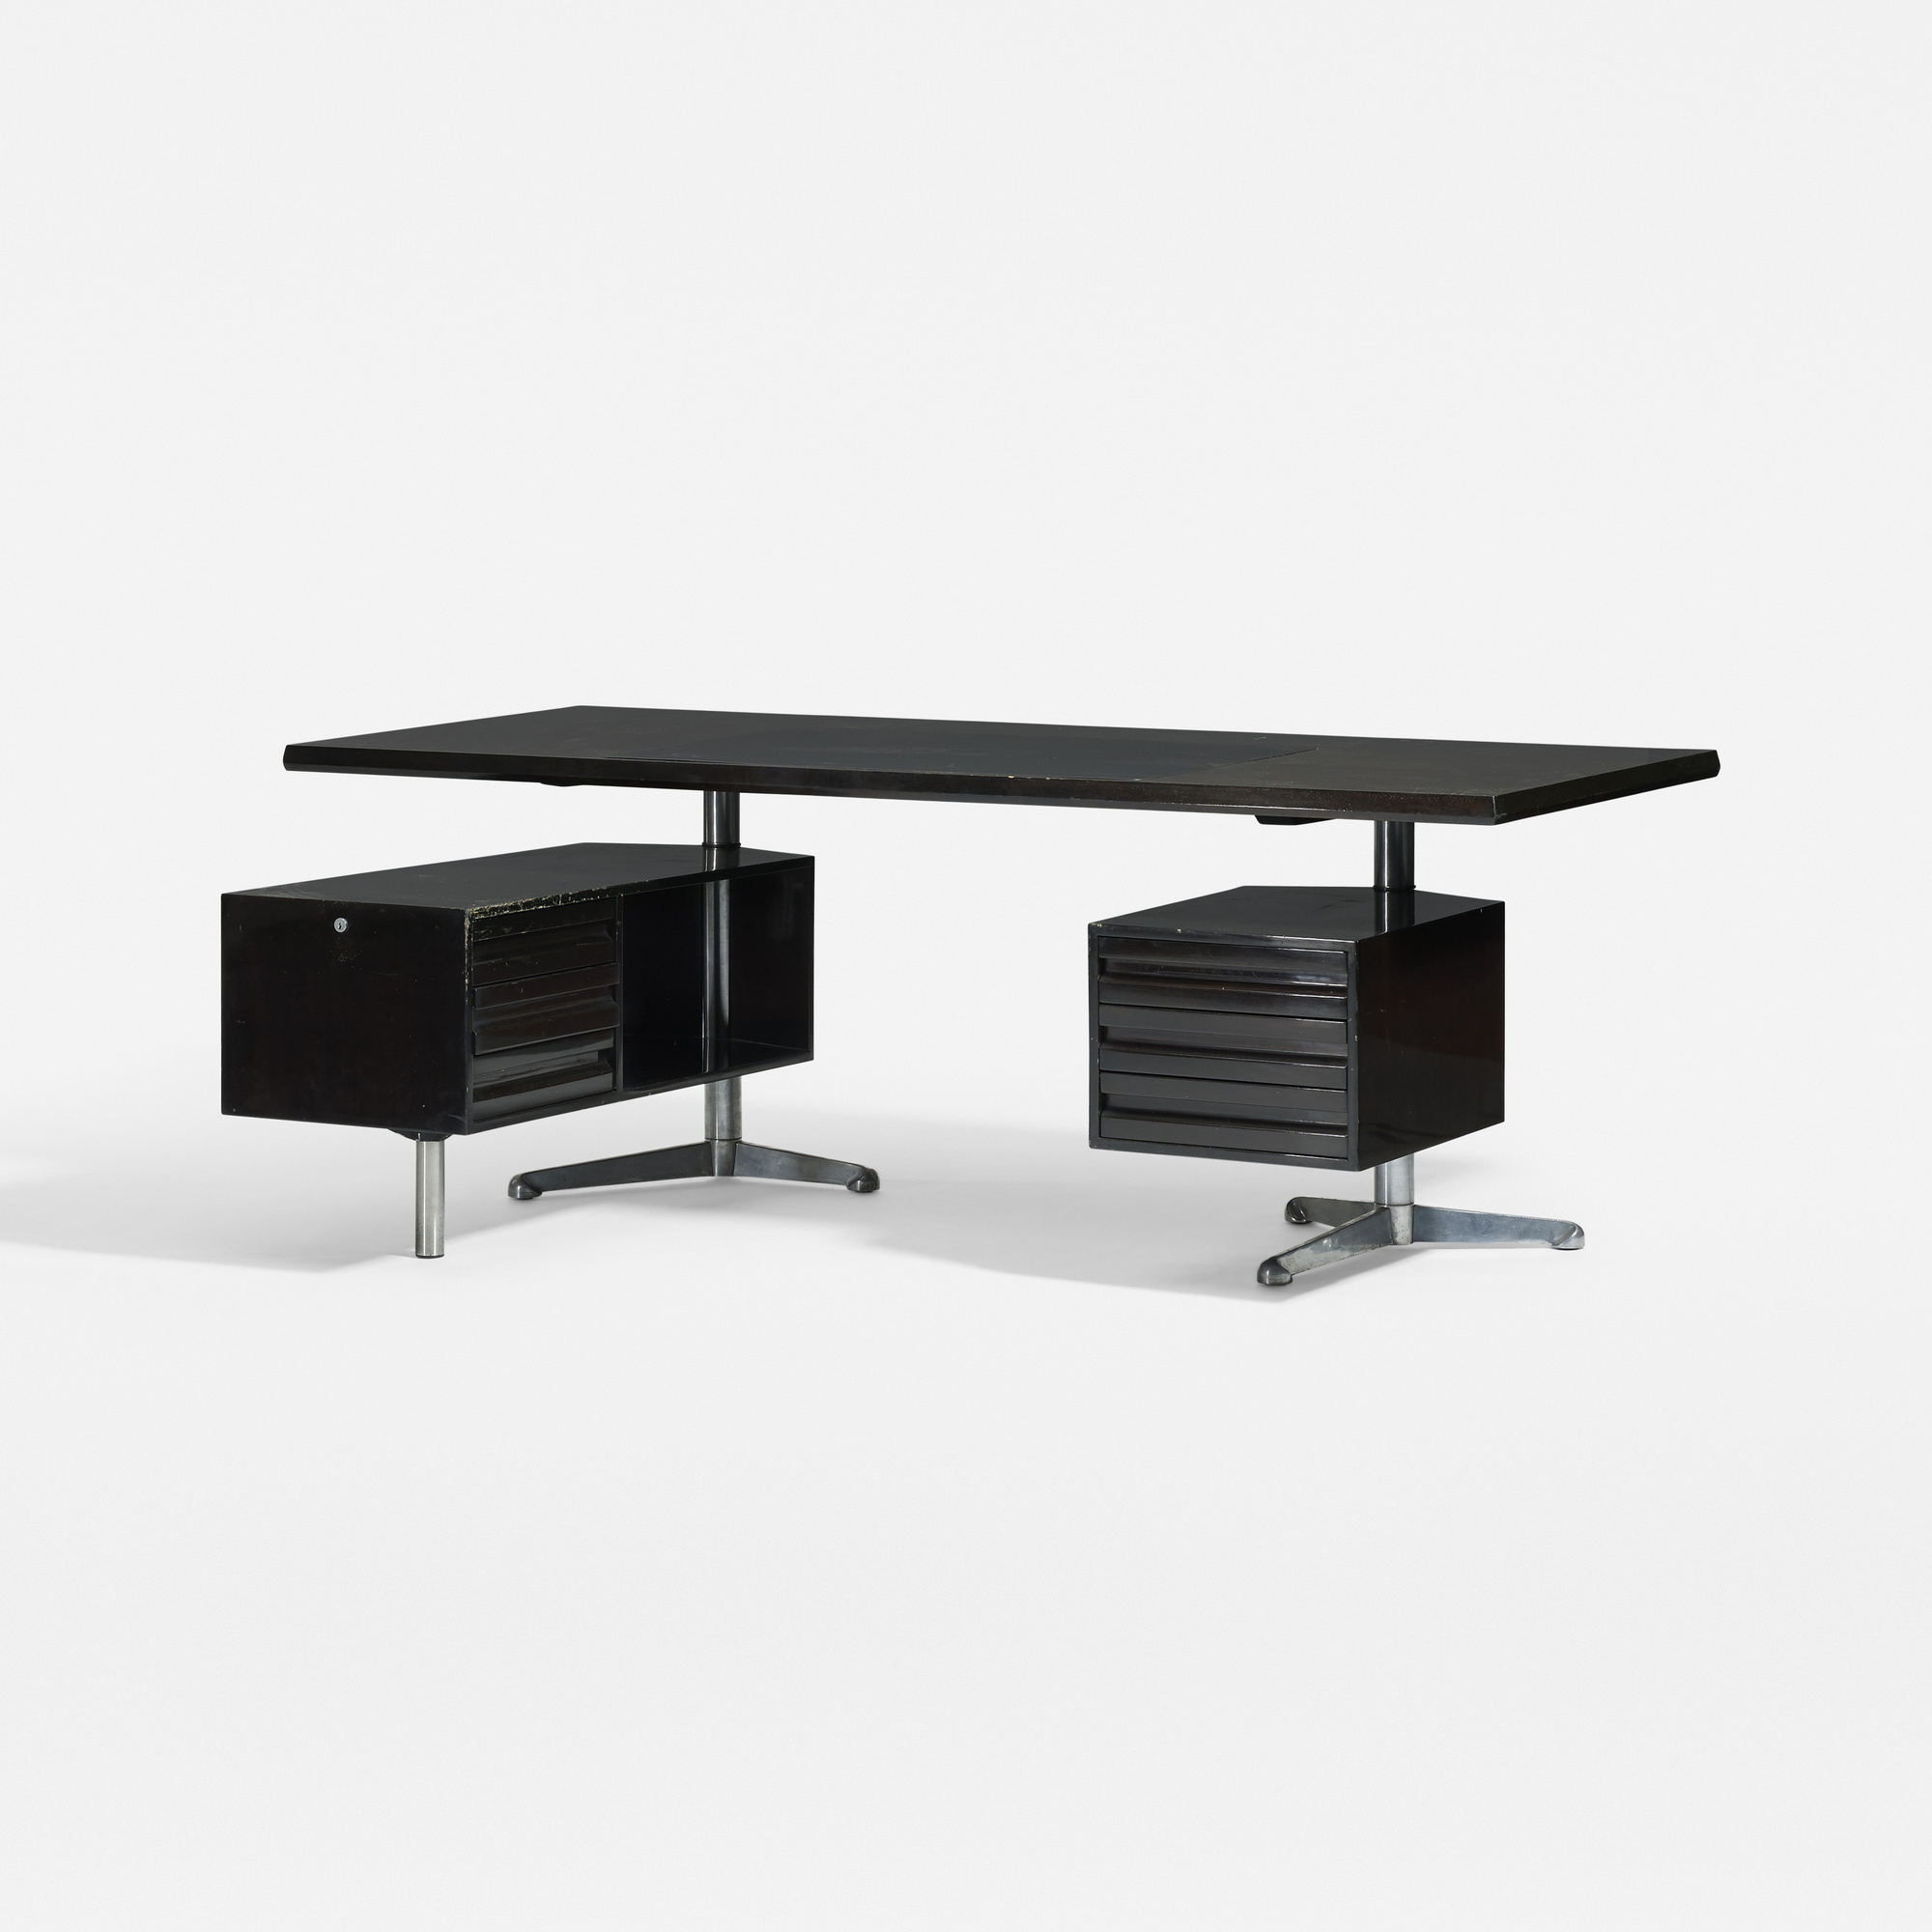 377: Osvaldo Borsani / executive desk, model T96 (1 of 1)